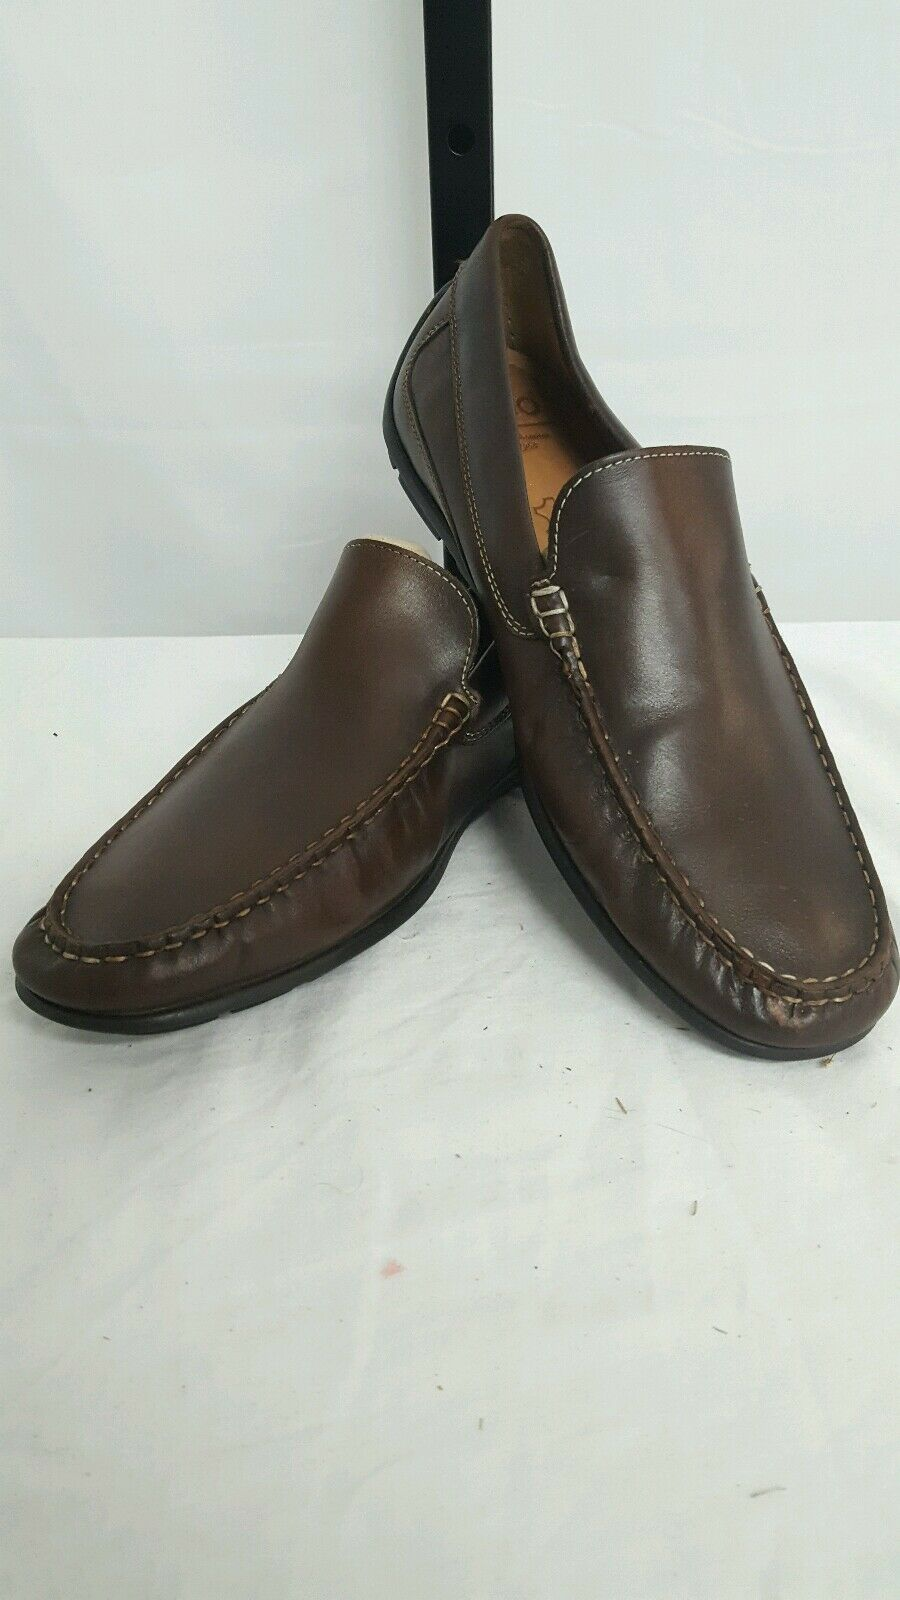 ECCO MENS CLASSIC LEATHER MOCCASIN SLIP ON DRIVING SHOES BROWN SIZE 9 - 9.5 $150